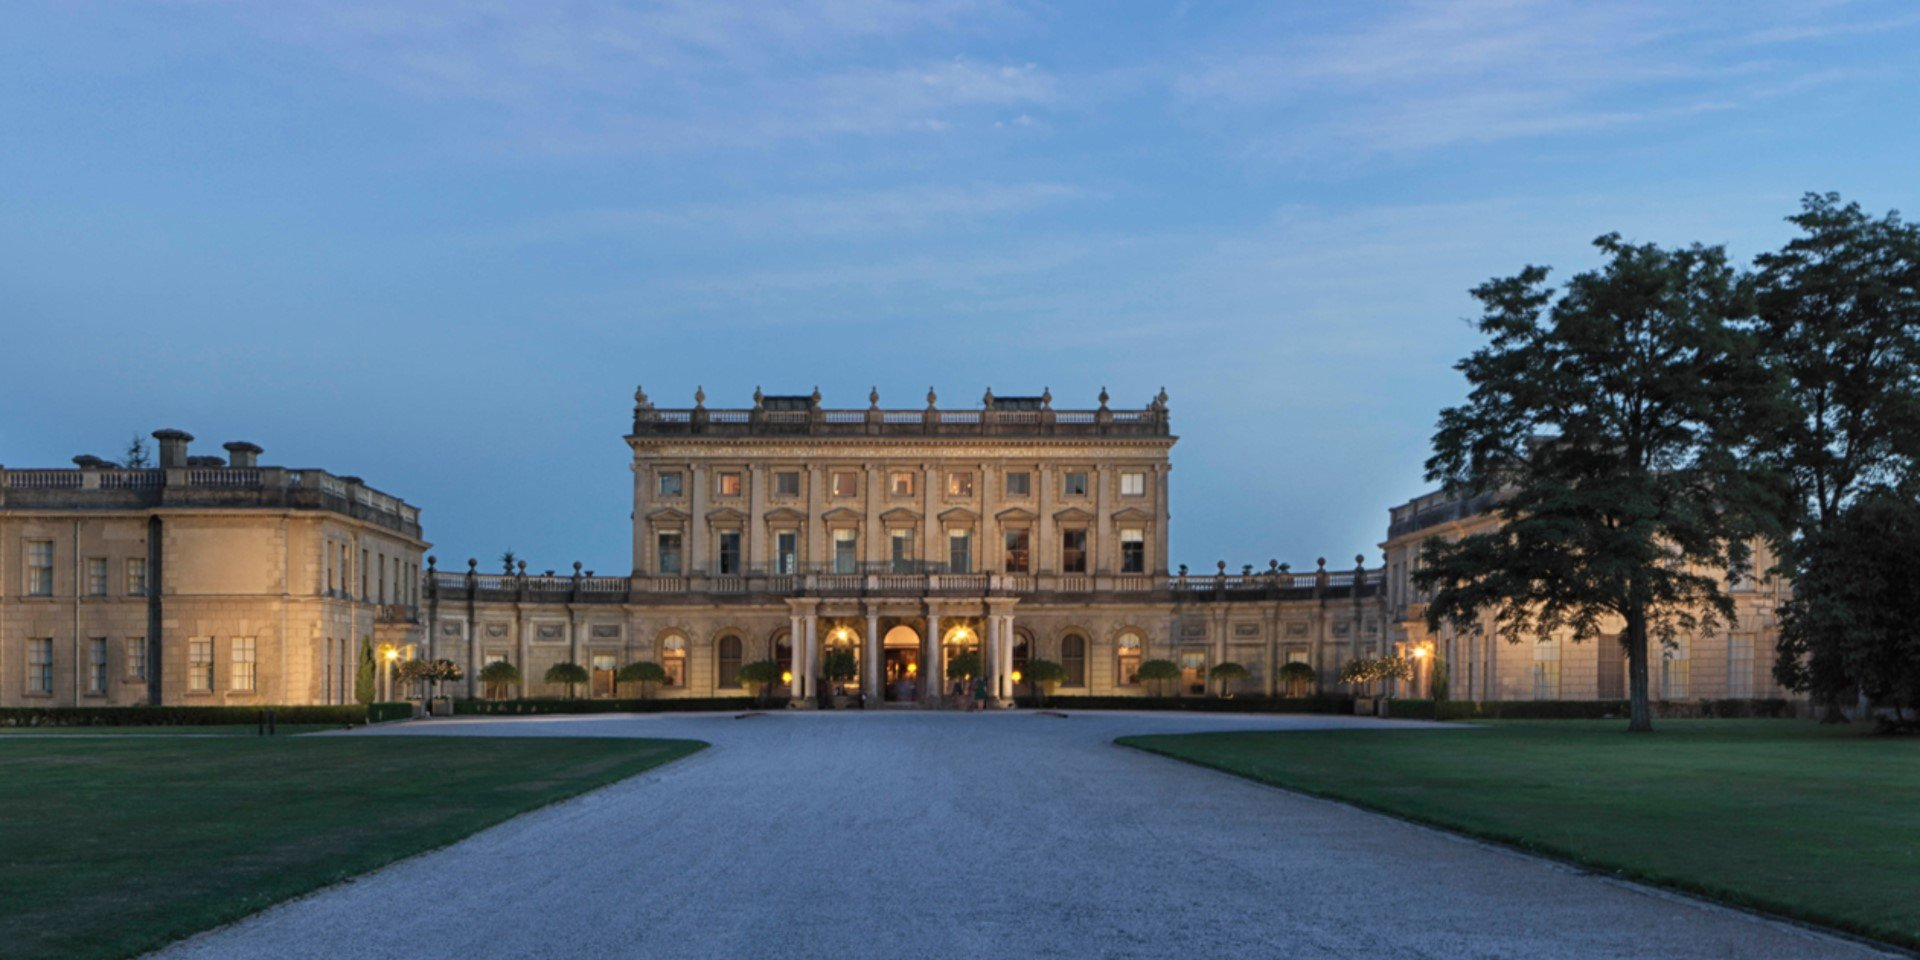 Cliveden events